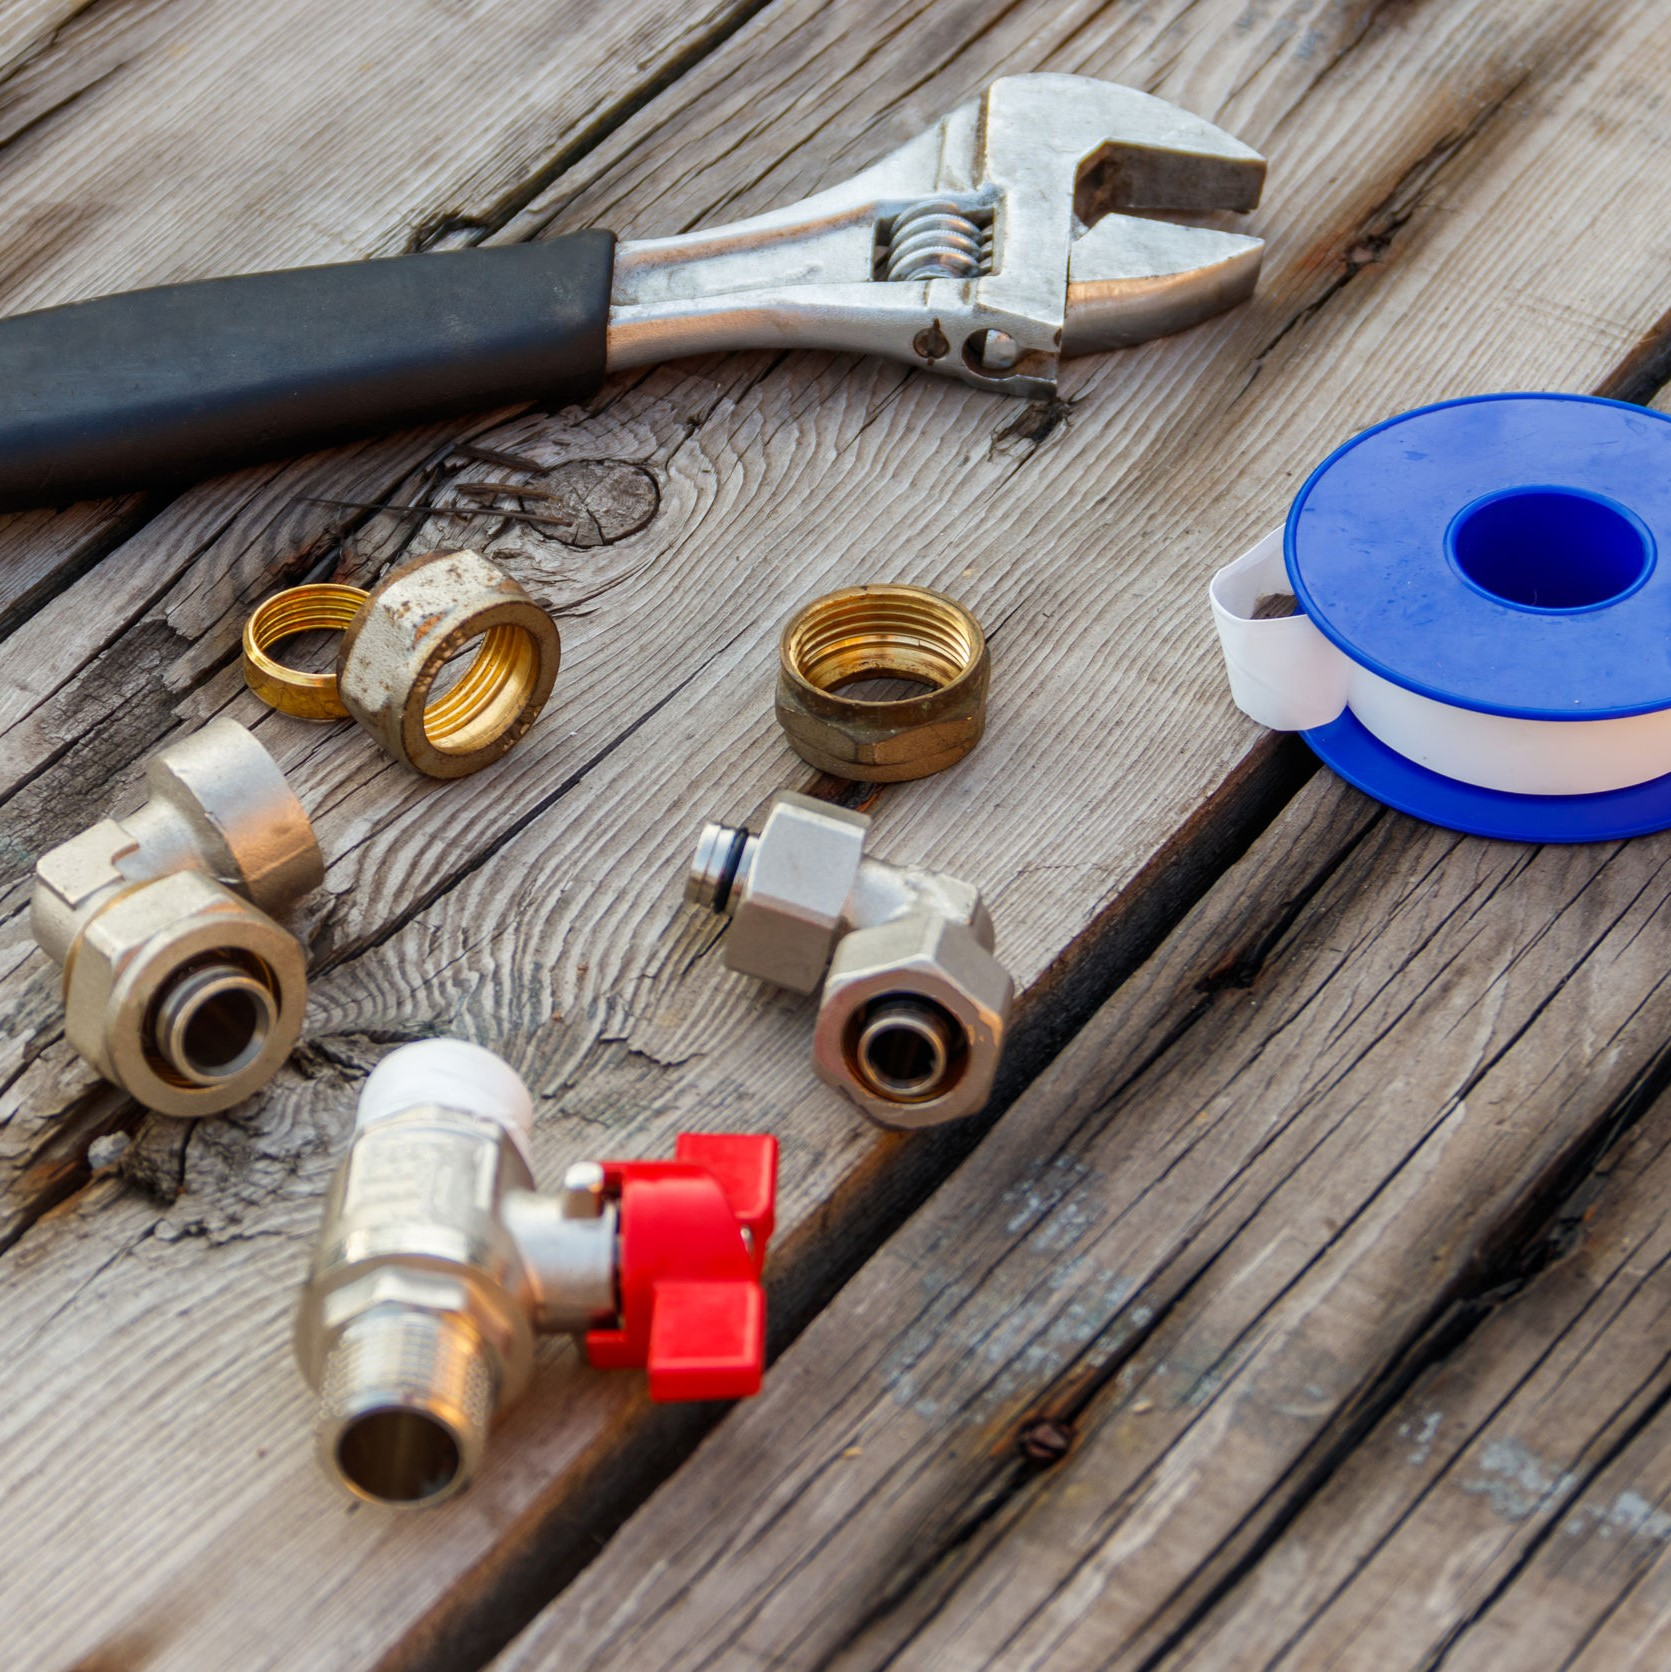 Fittings, valves, and tools lined up to work on a gas line.